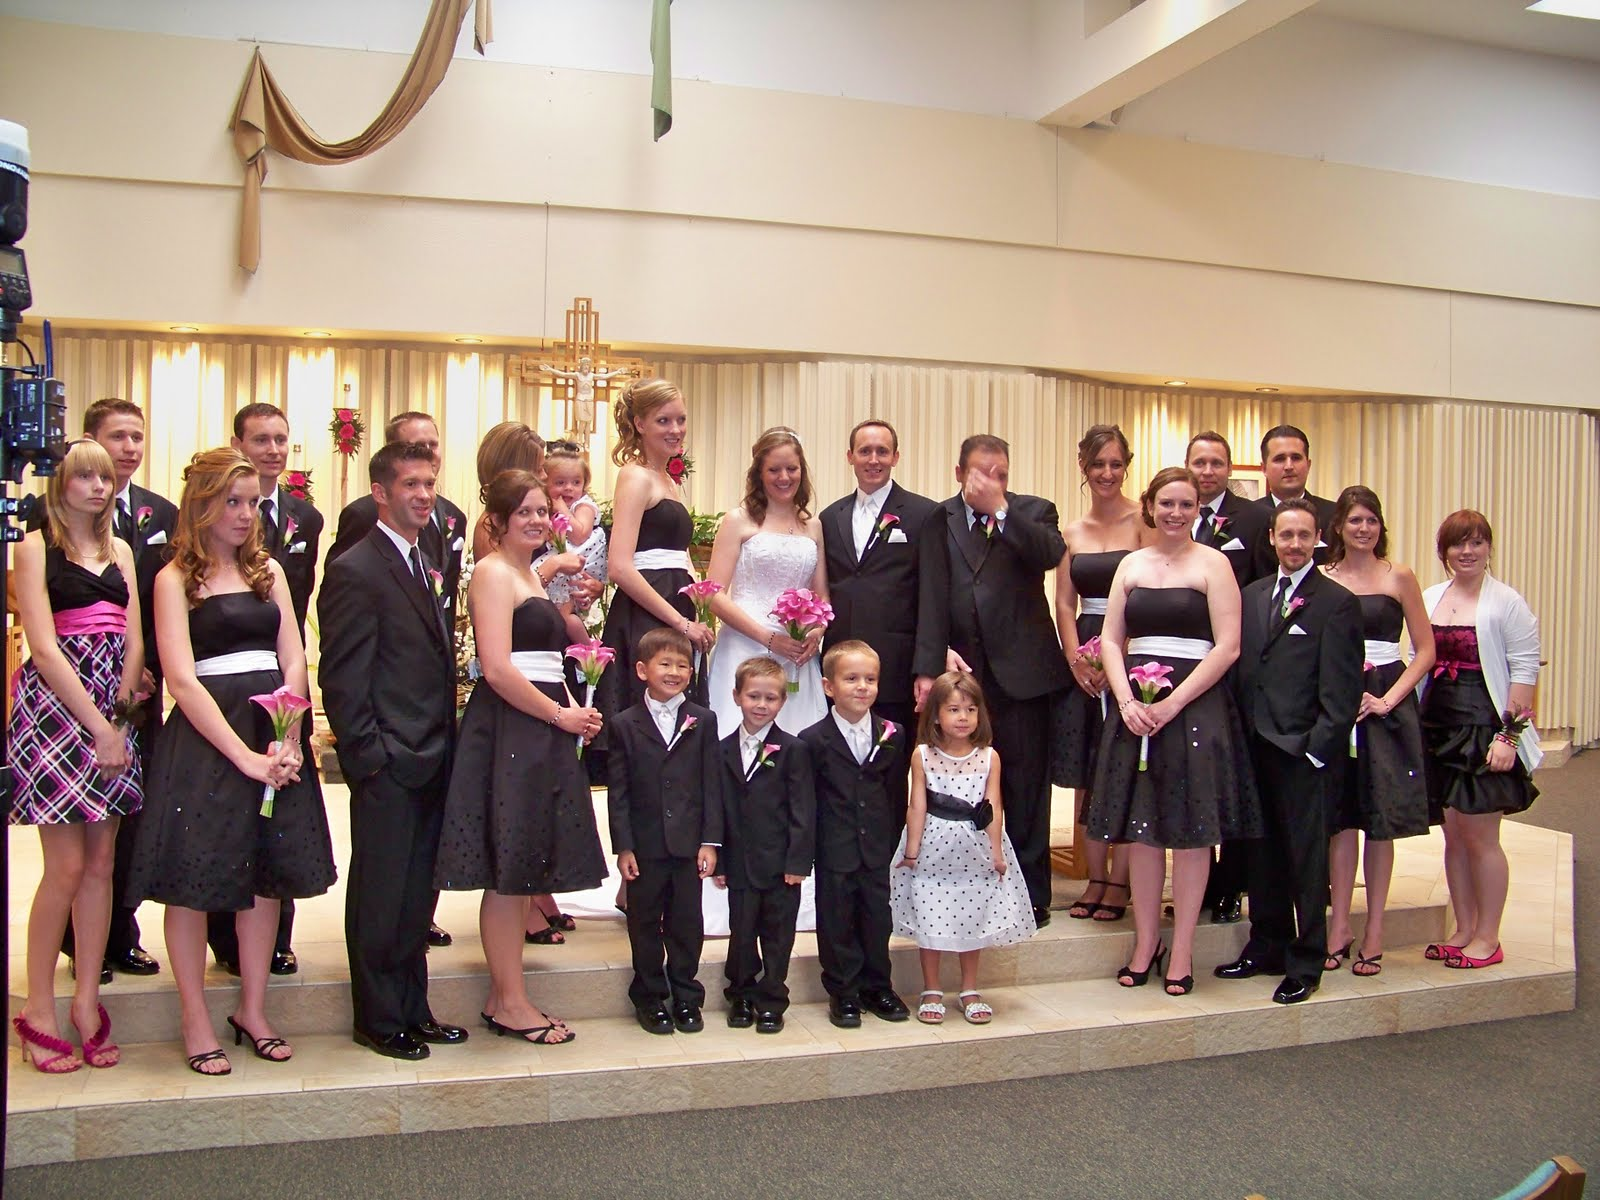 The entire bridal party